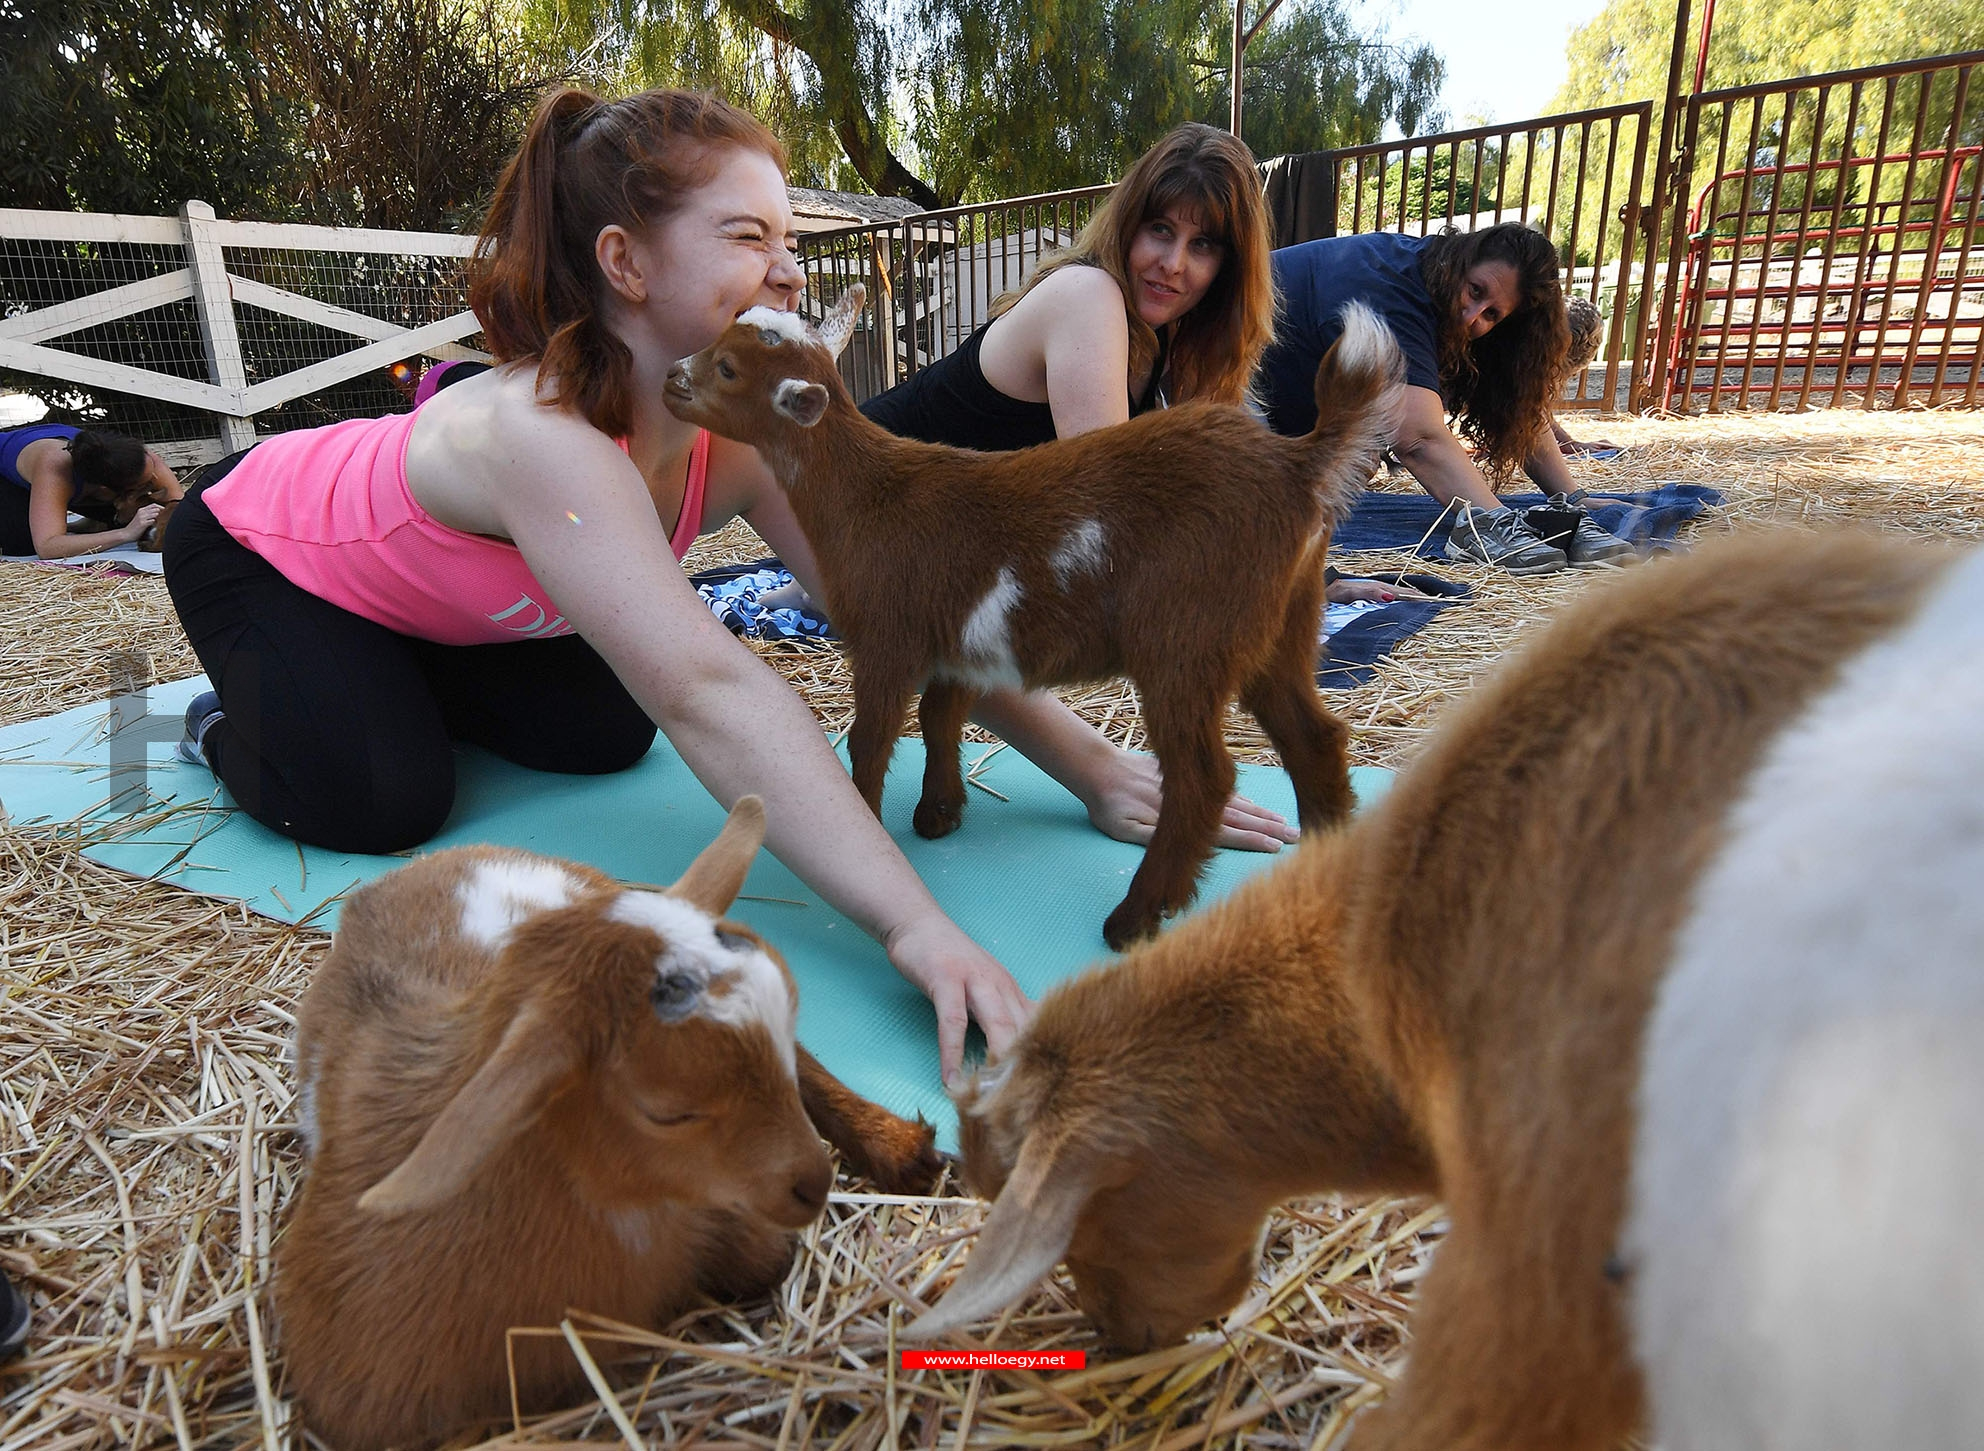 Stephanie Allis struggling to maintain her concentration as a baby goat gets close during a